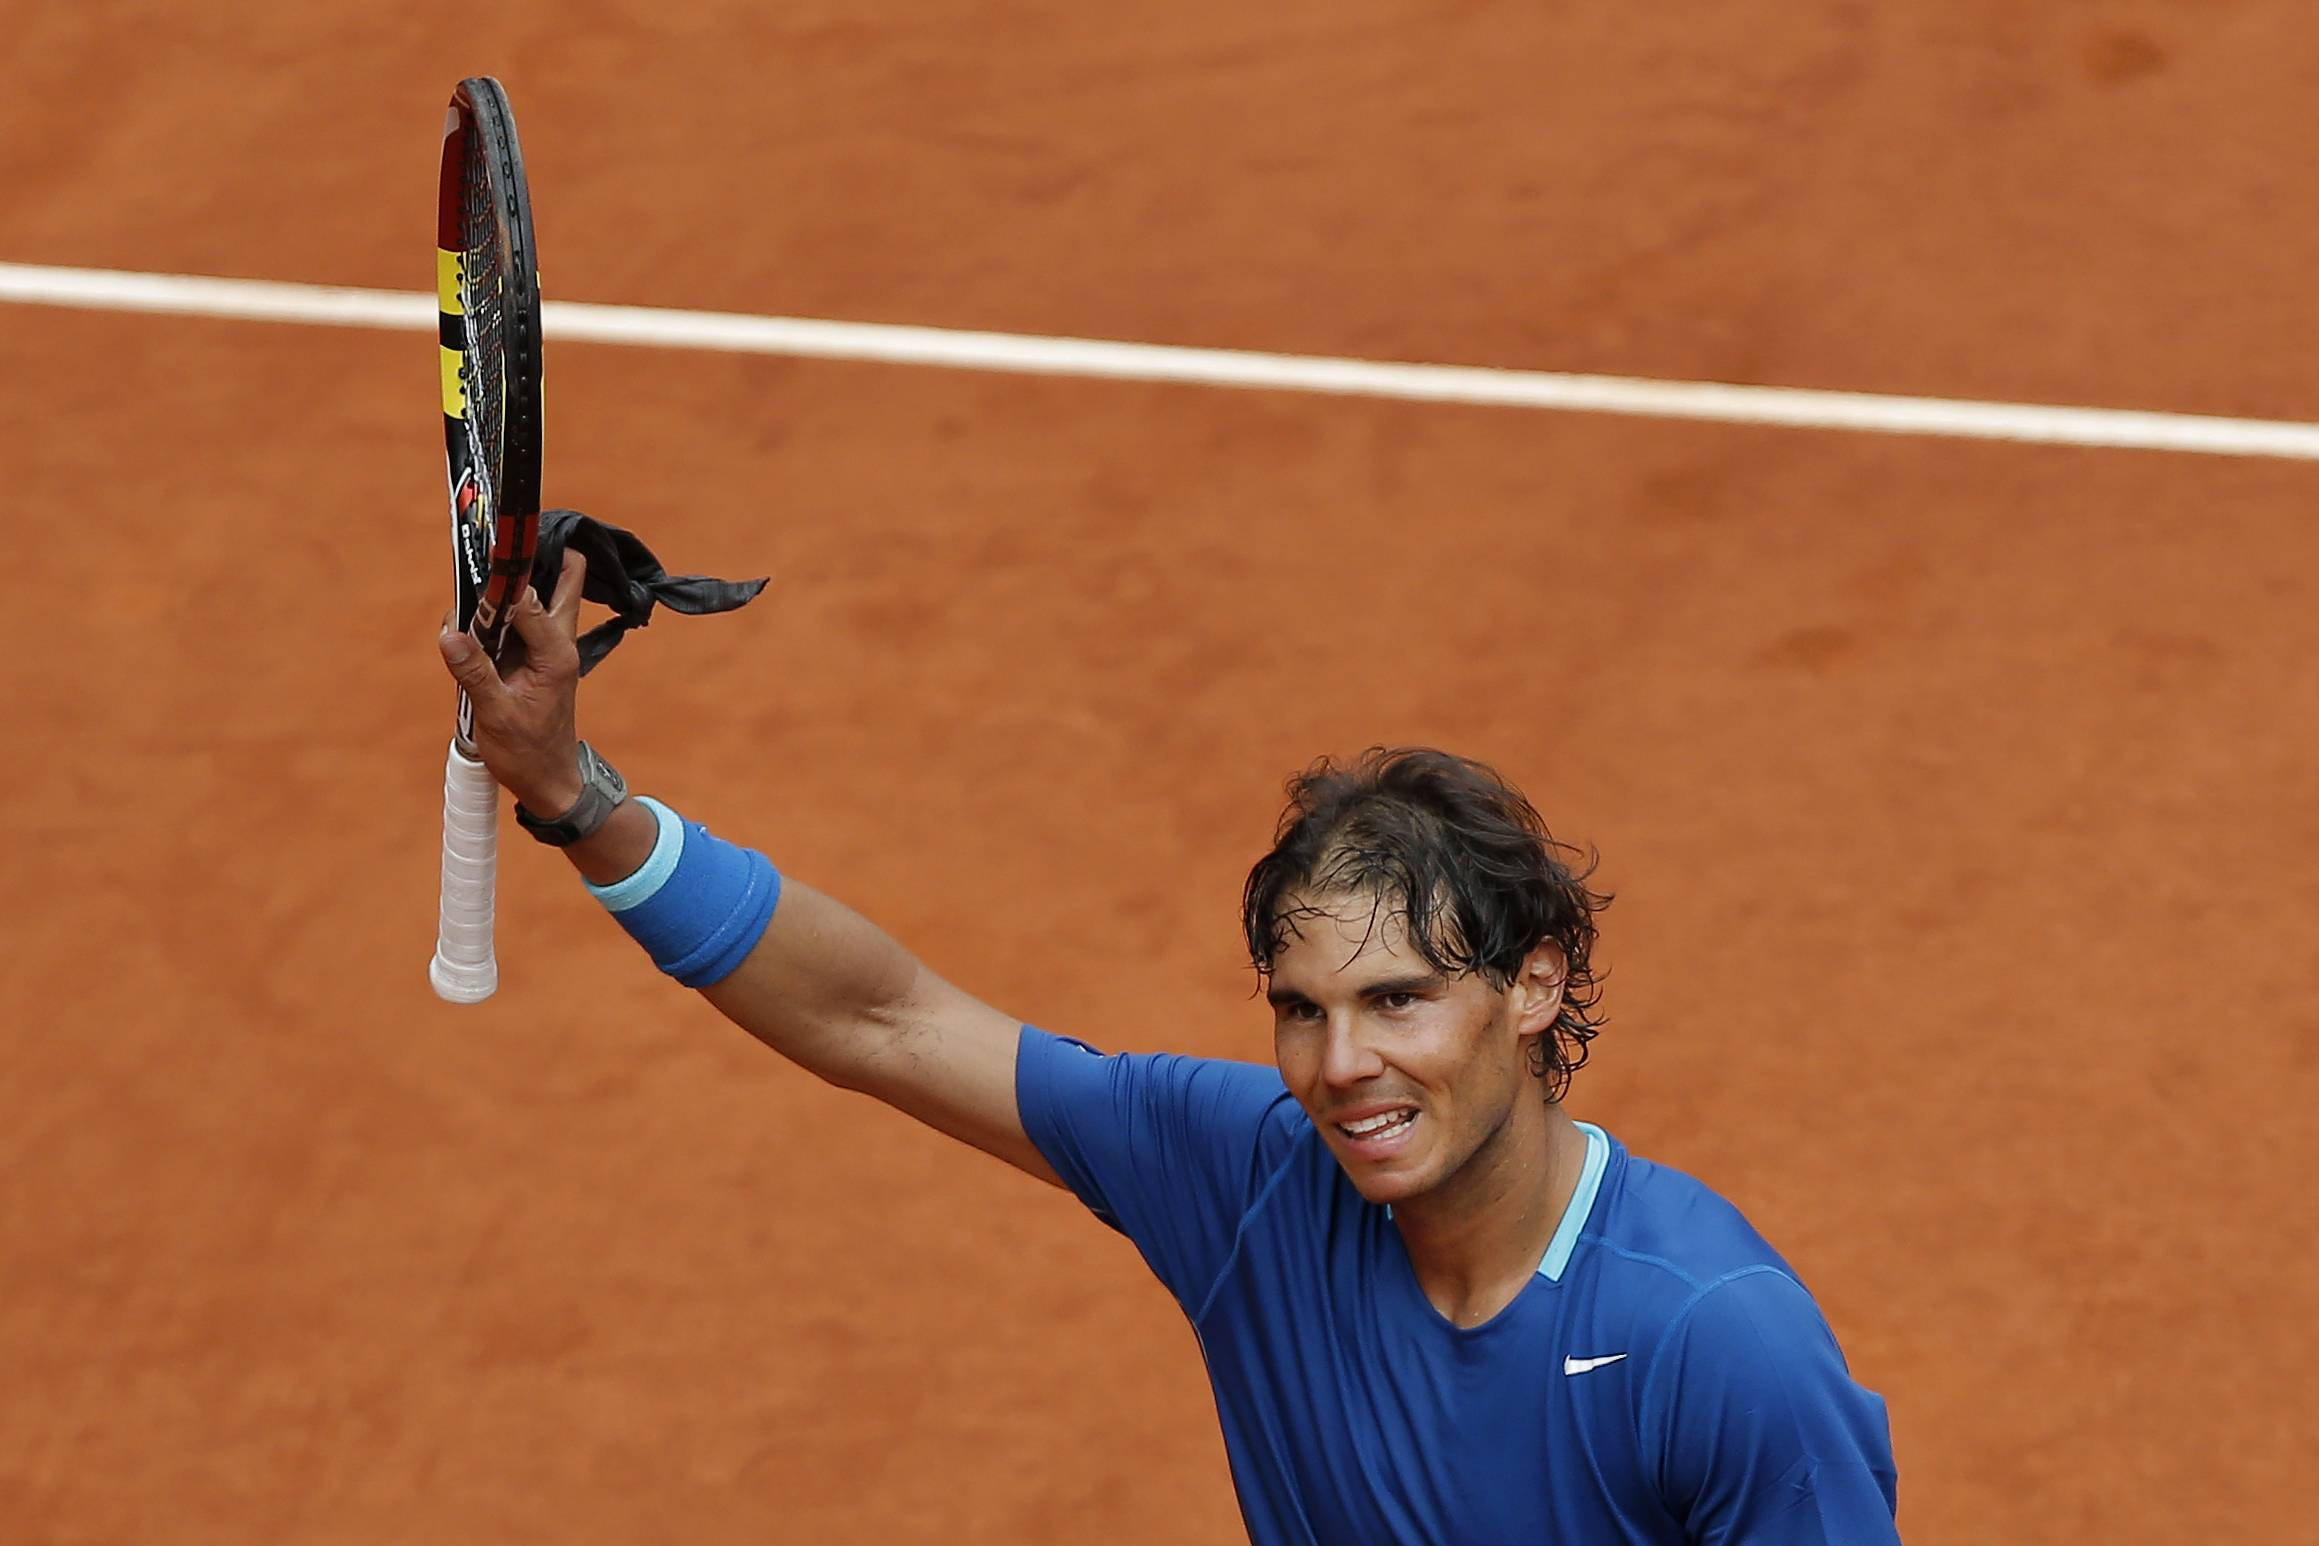 Rafael Nadal from Spain celebrates his victory during a Madrid Open tennis tournament match against Juan Monaco from Argentina, in Madrid, Spain, Wednesday, May 7, 2014.